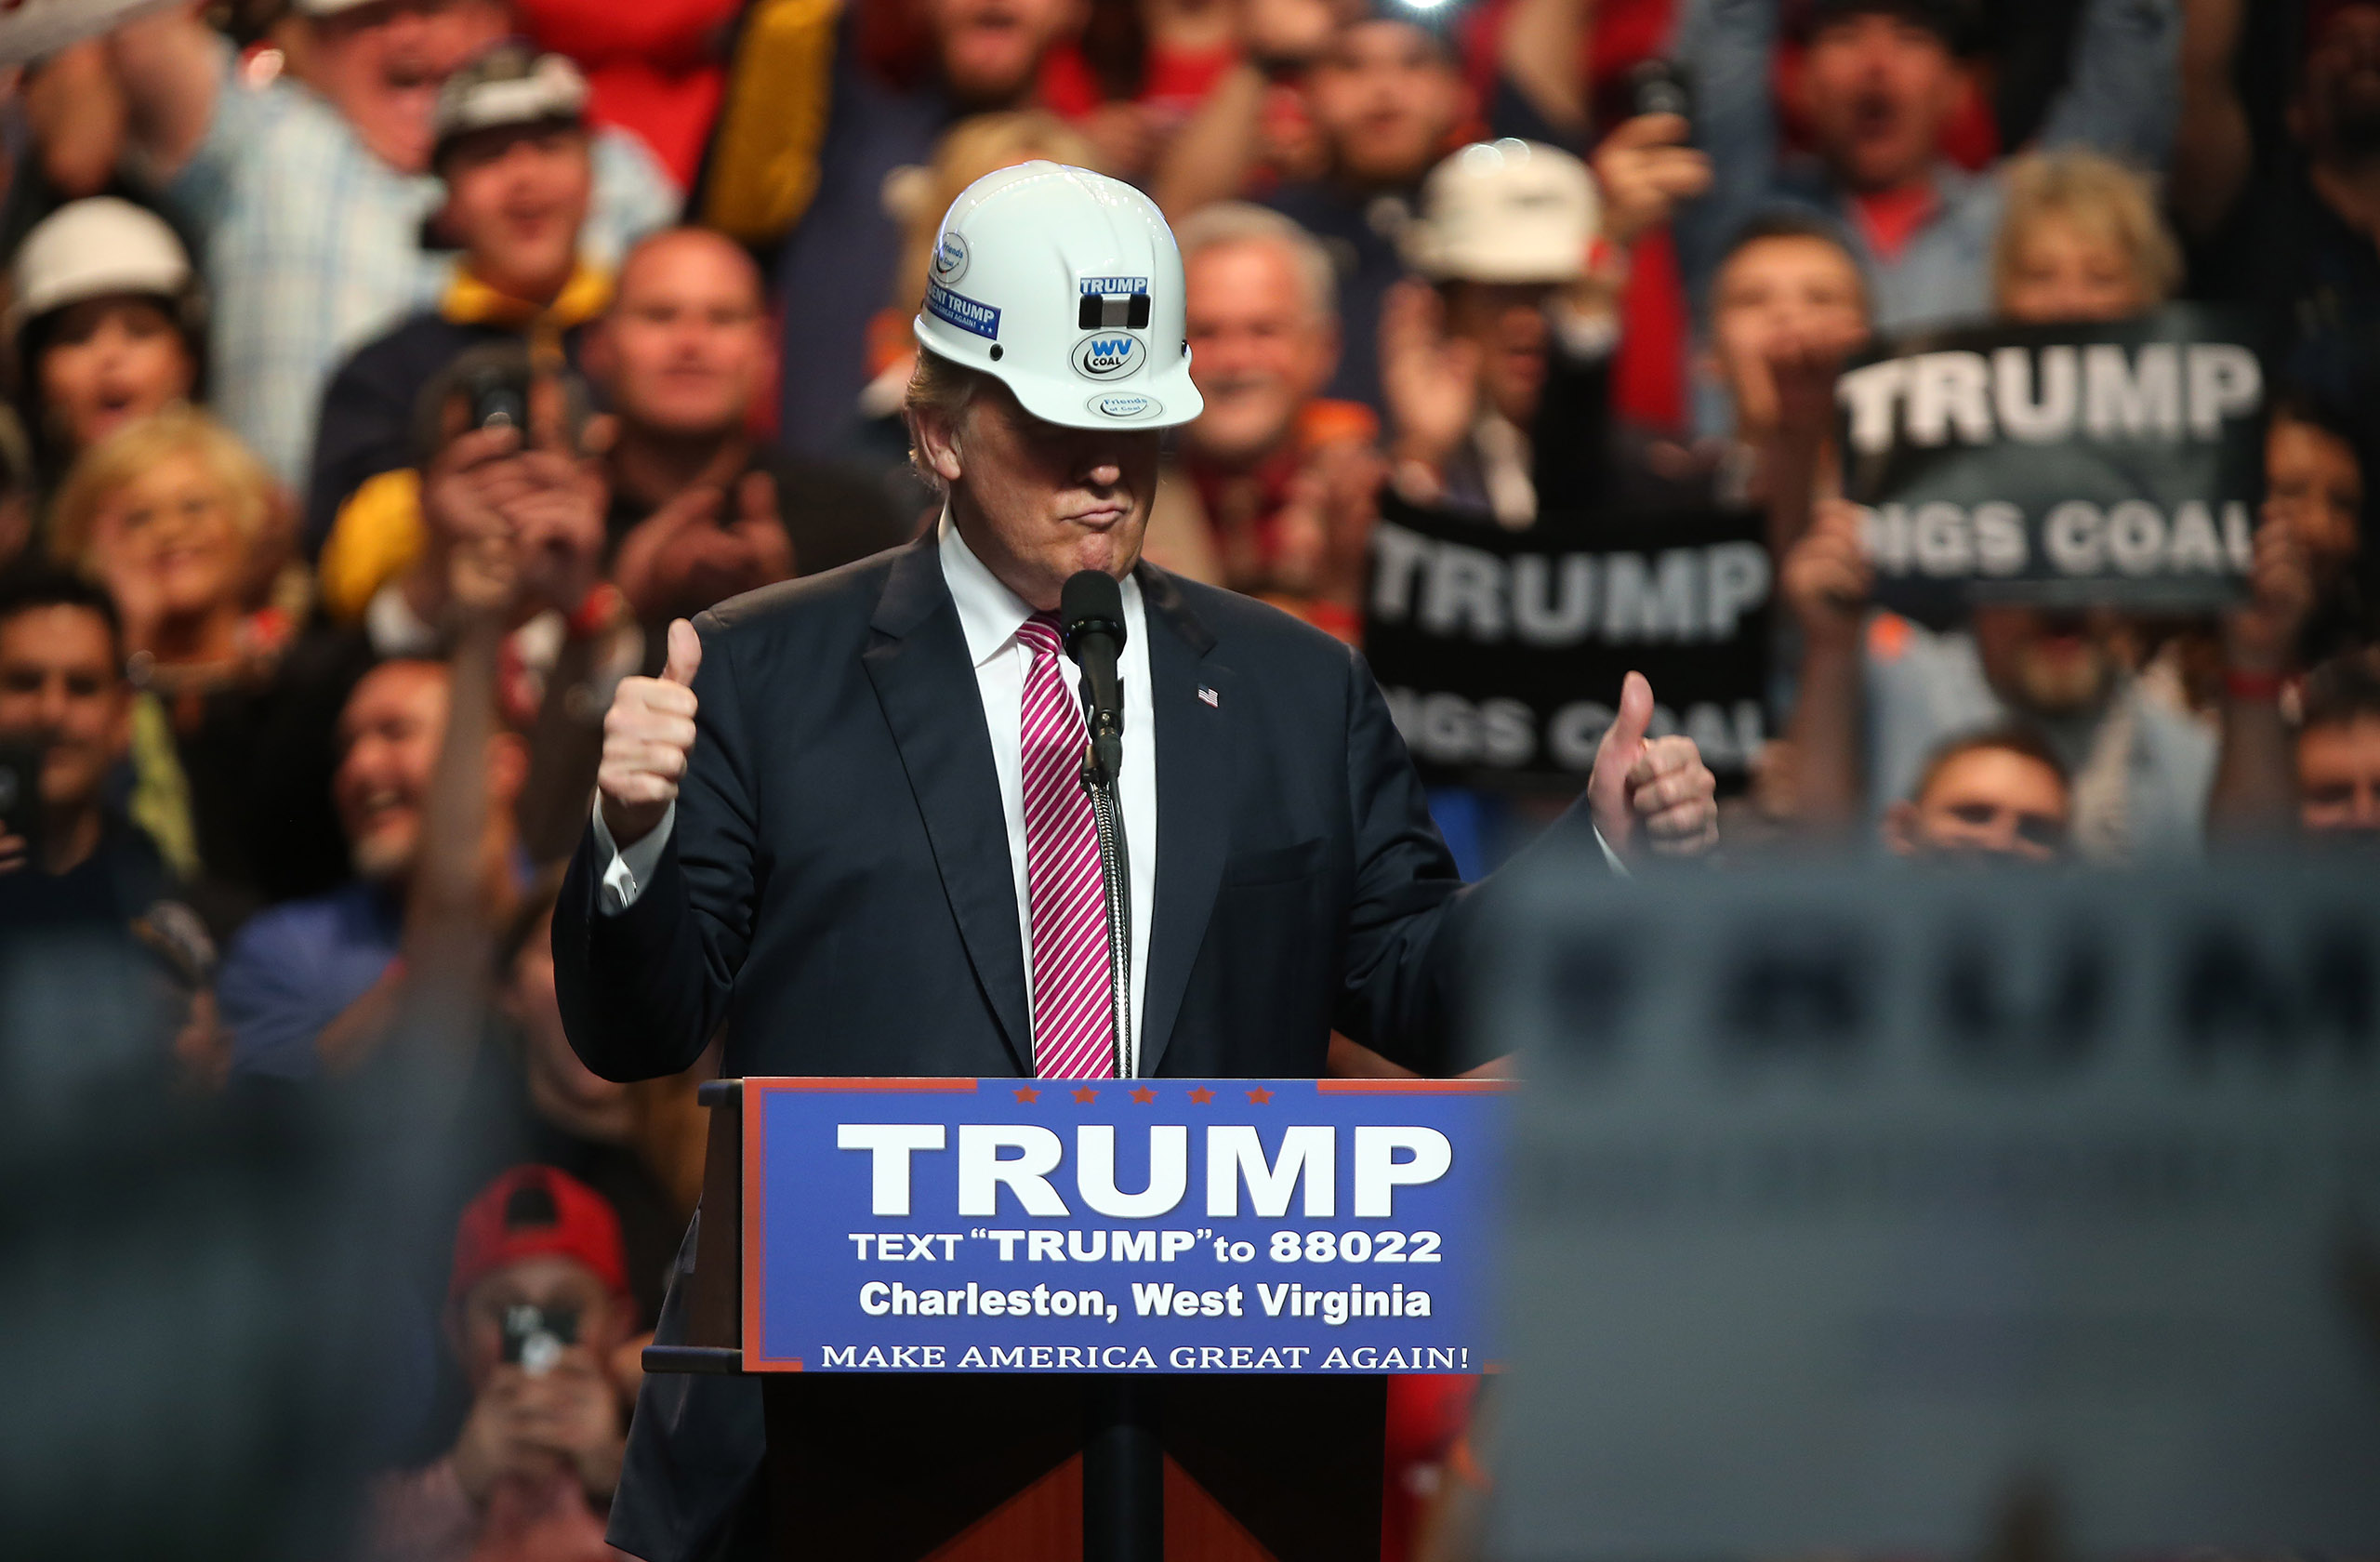 Republican Presidential candidate Donald Trump models a hard hat in support of the miners during his rally at the Charleston Civic Center on May 5, 2016 in Charleston, West Virginia.